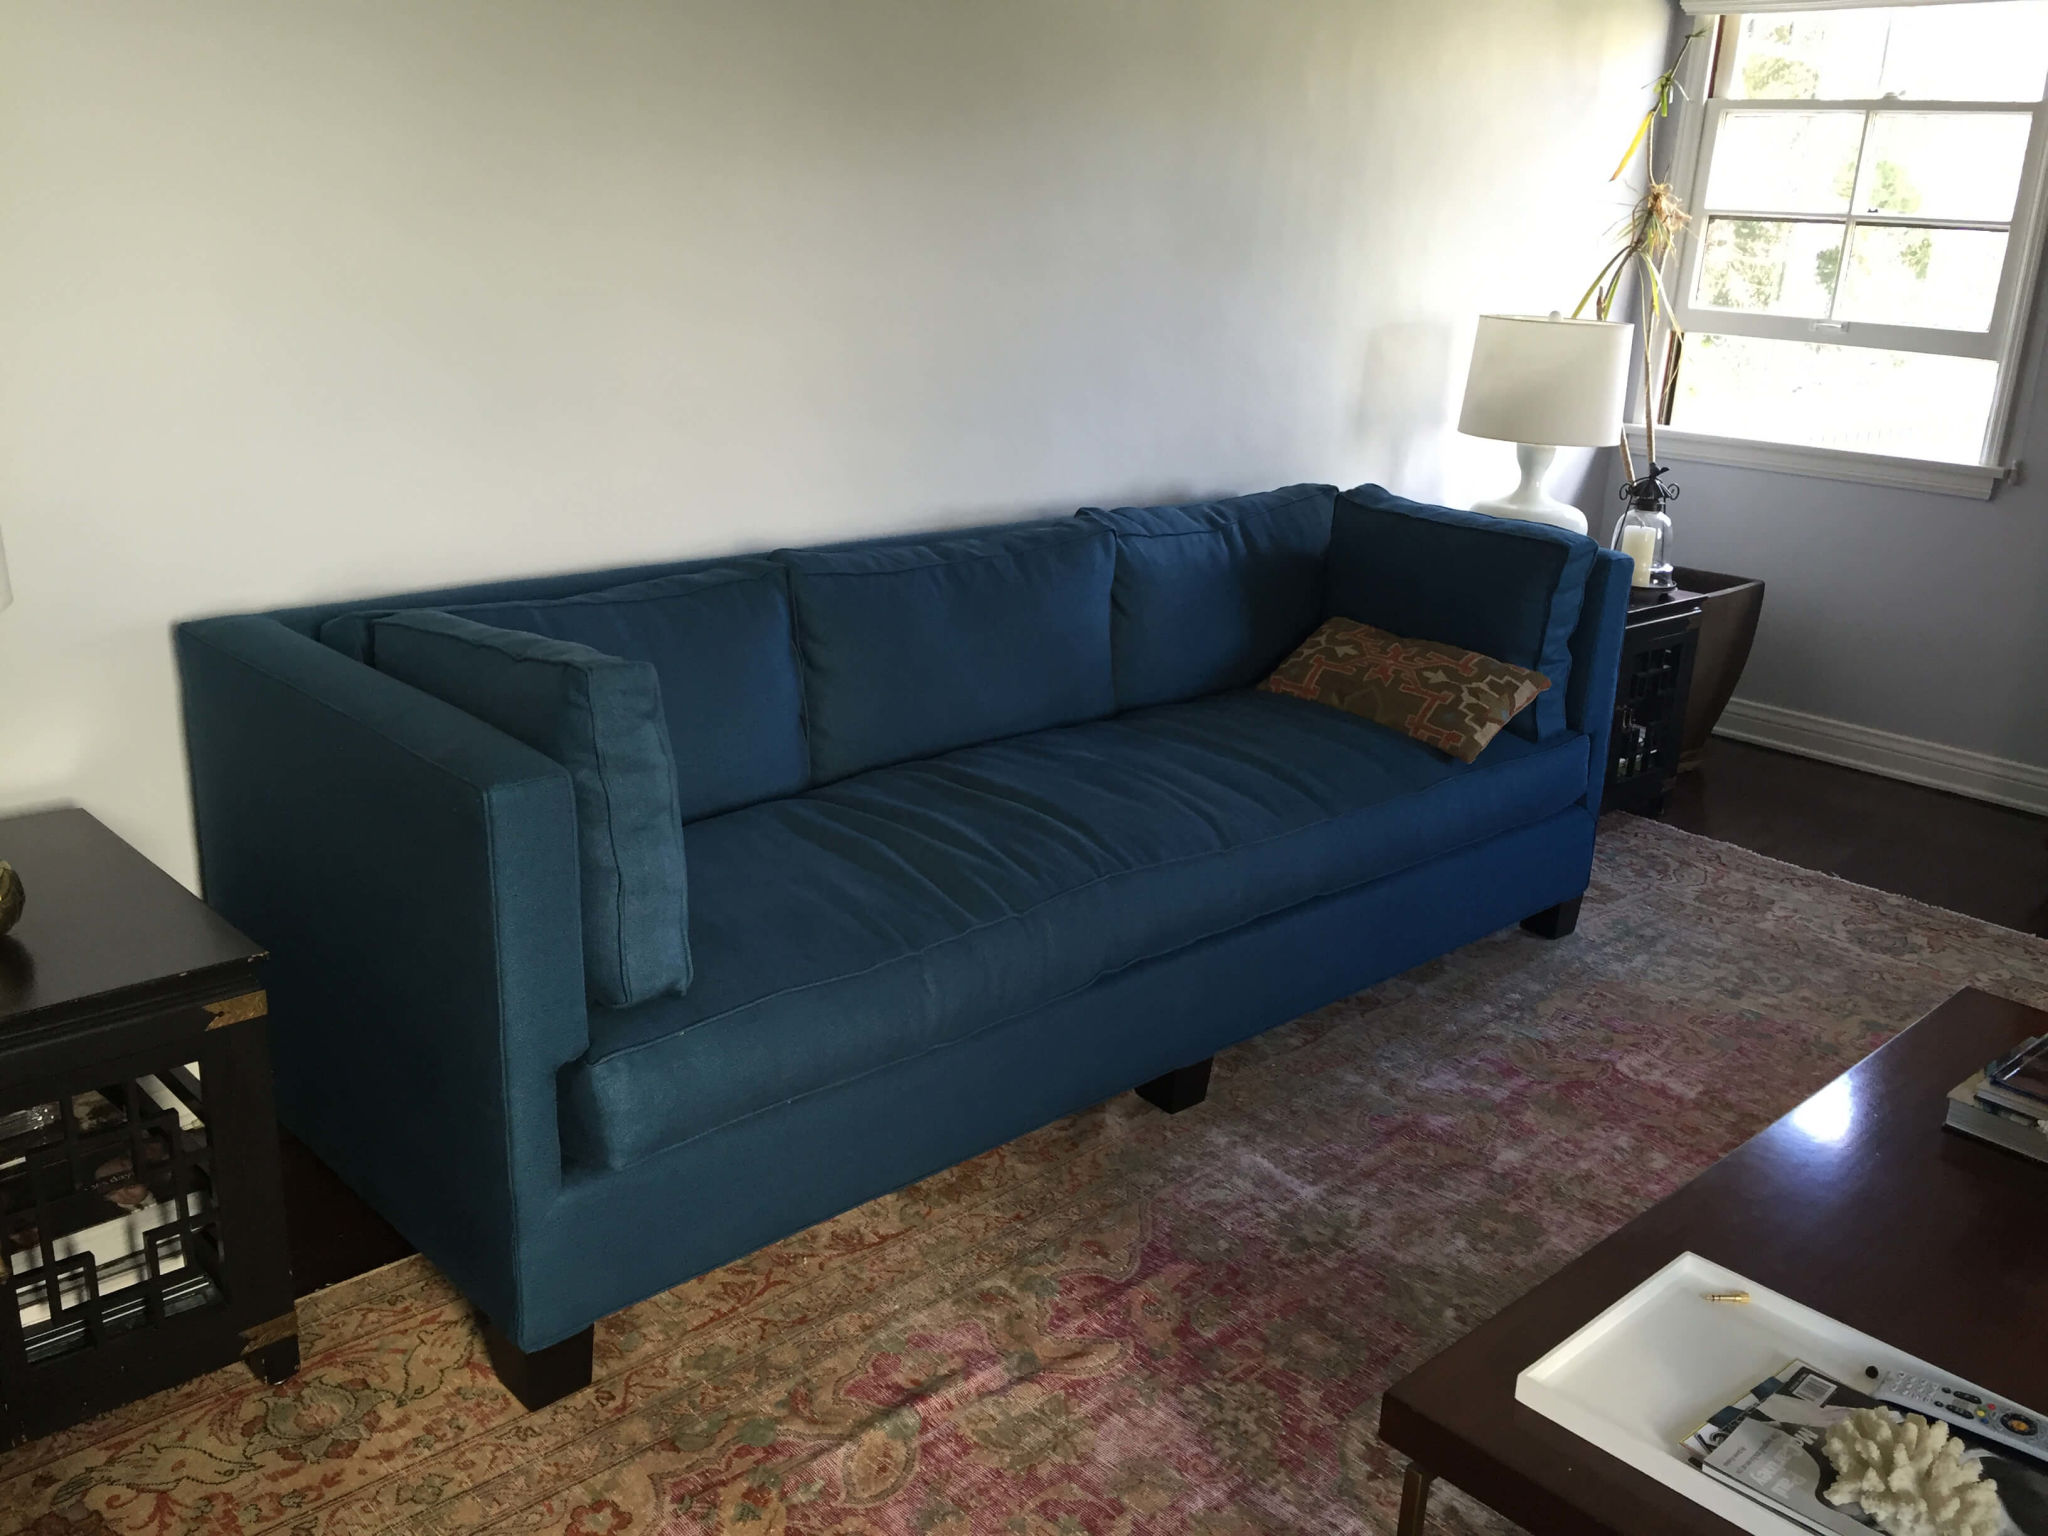 GINNY_MACDONALD_SILVER_LAKE_HILLS_LIVING_ROOM_PEACOCK_BLUE_SOFA